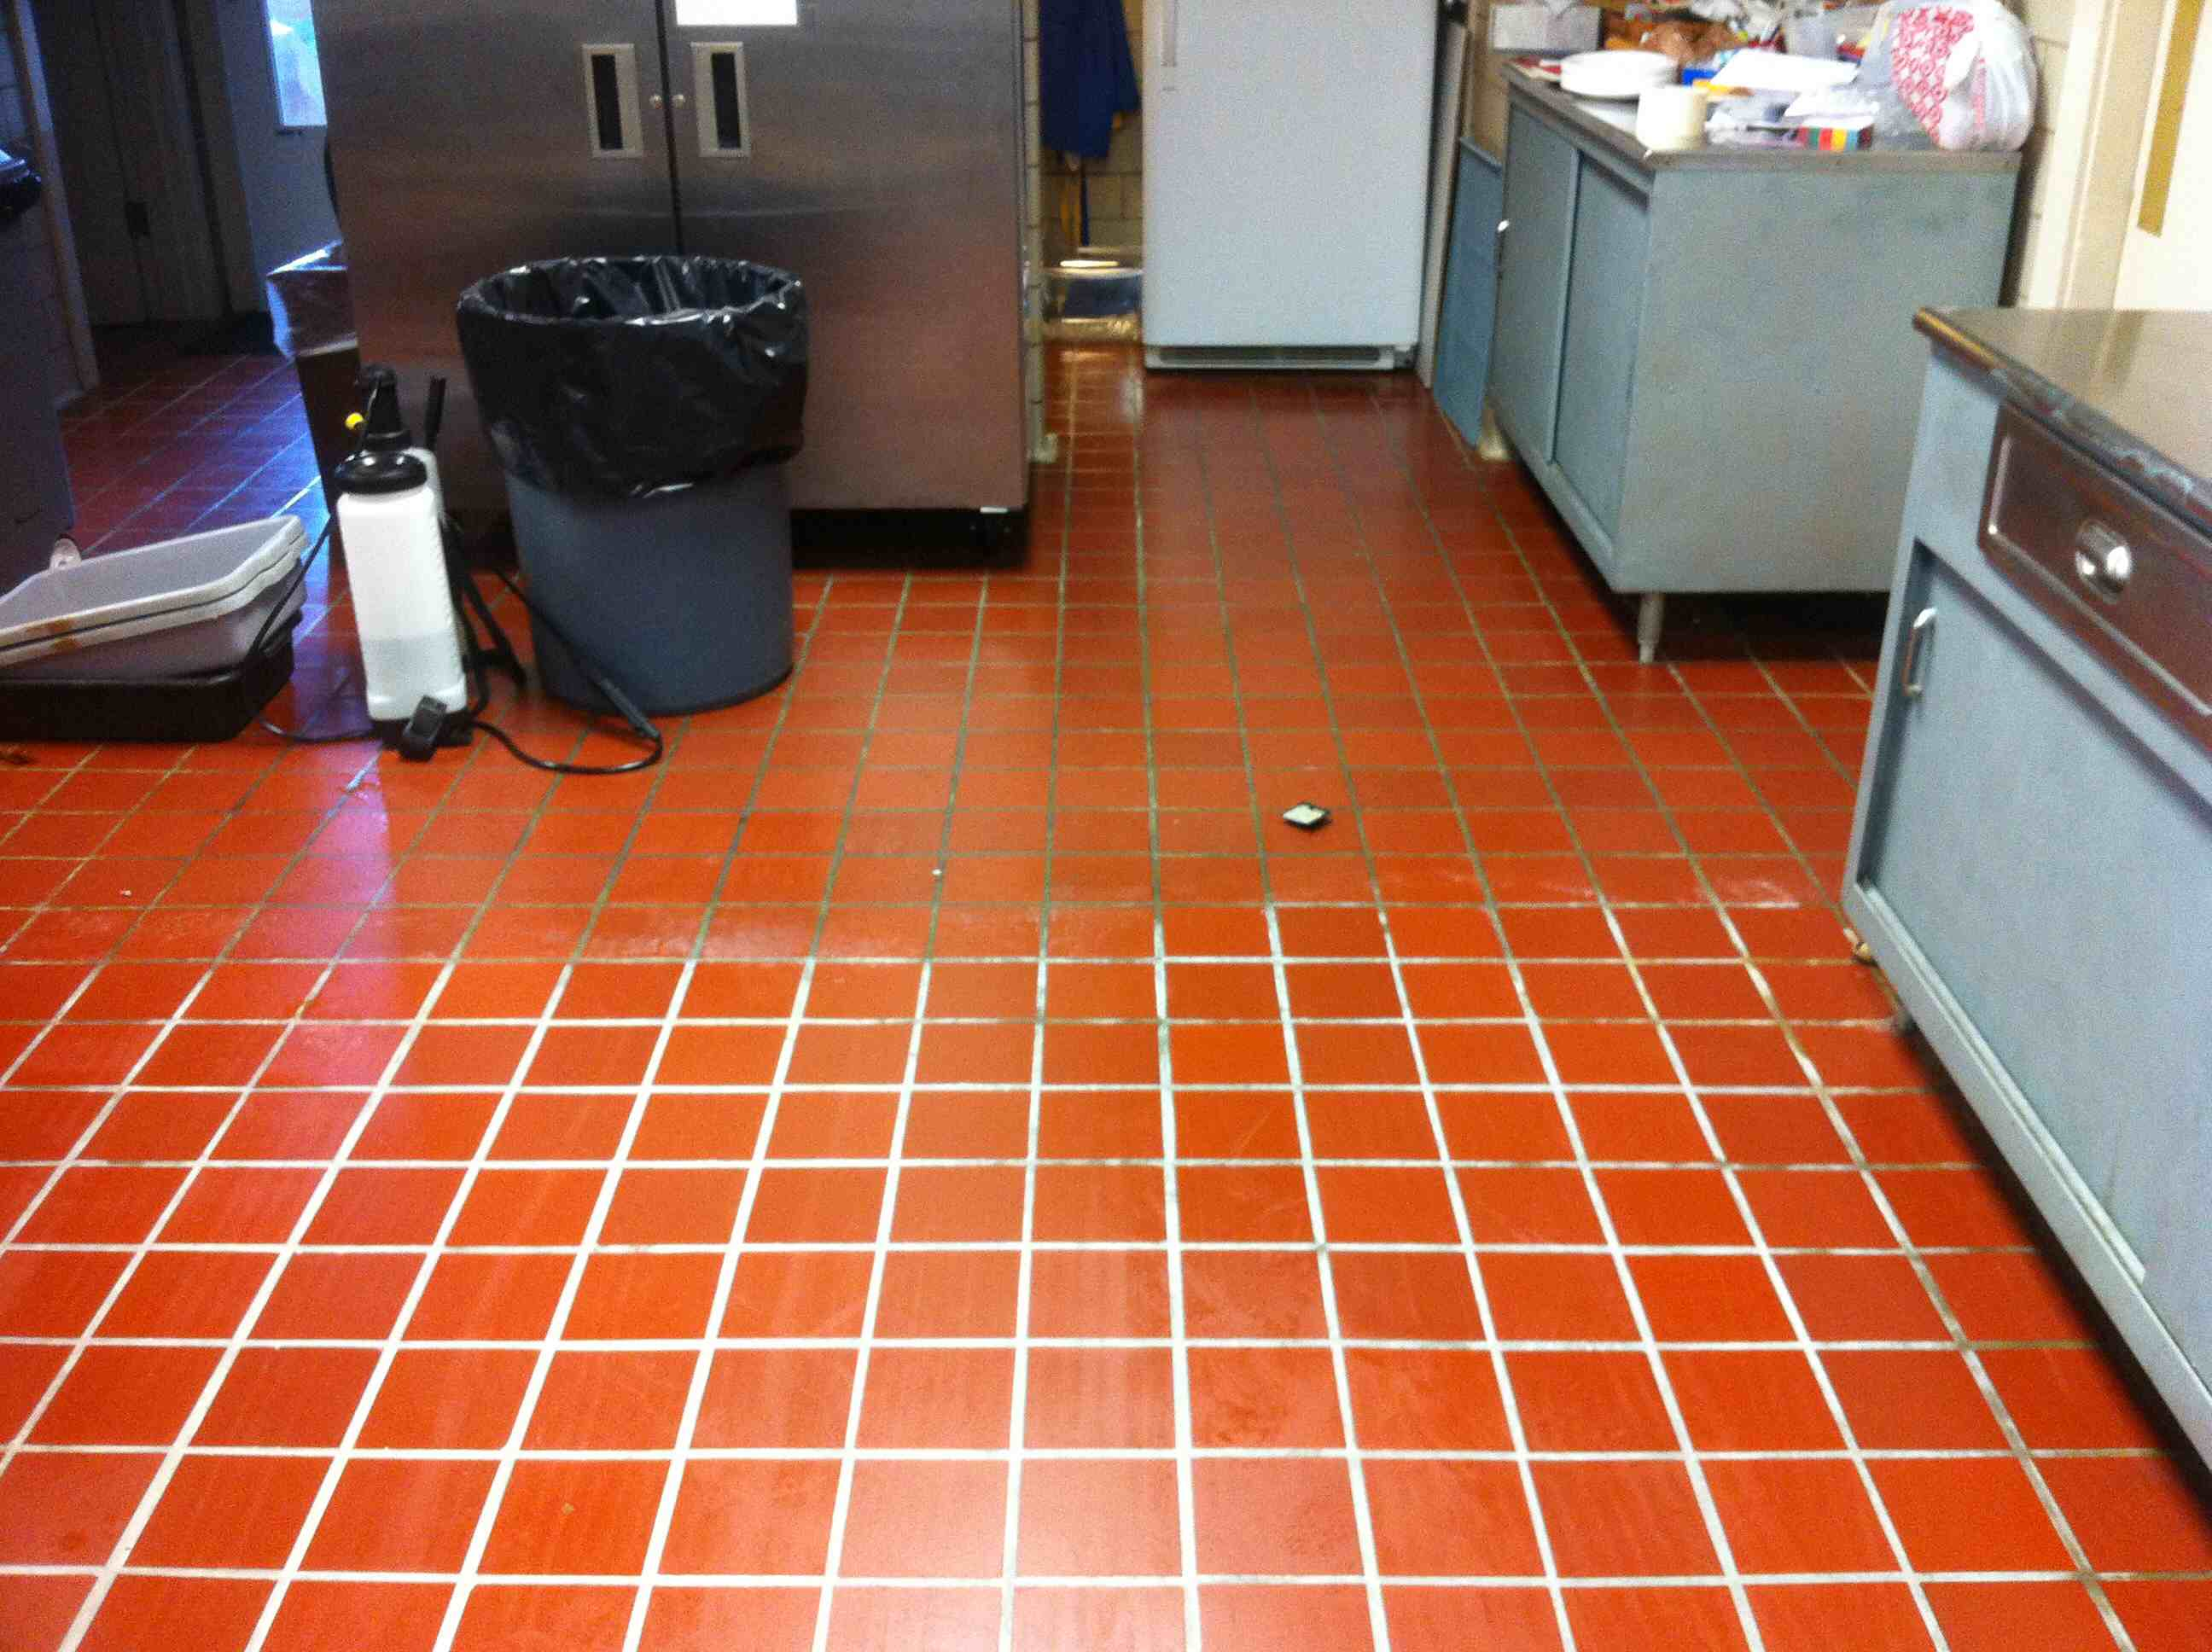 Look at the contrast between cleaned and uncleaned tile!